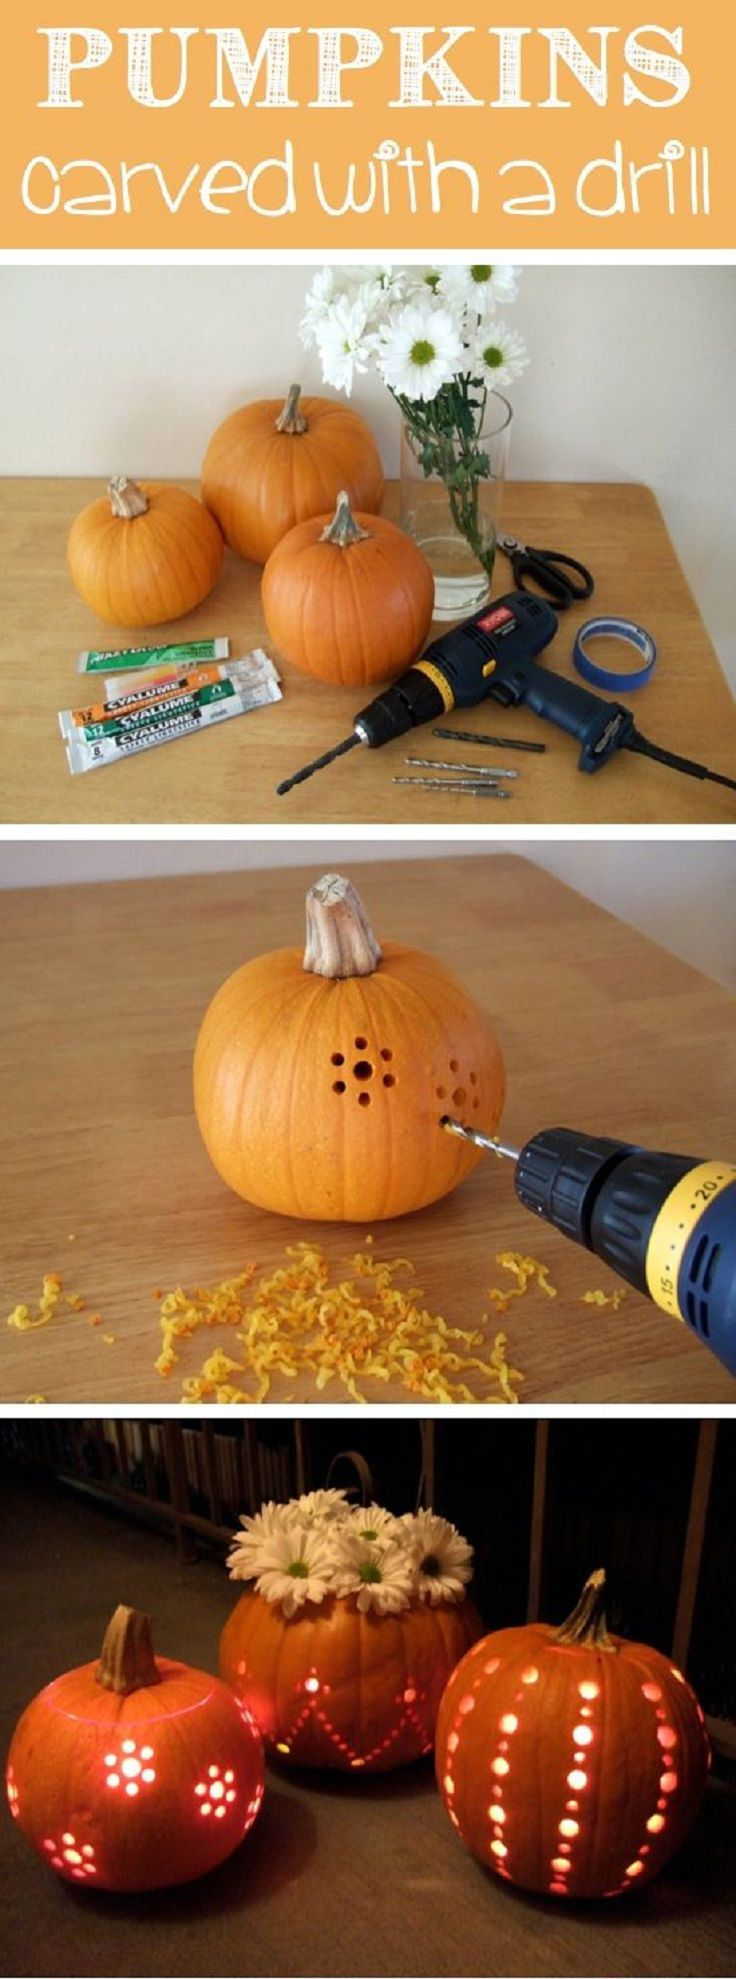 Carving pumpkins with a drill. I would do this with little ones and place them inside as party decor.